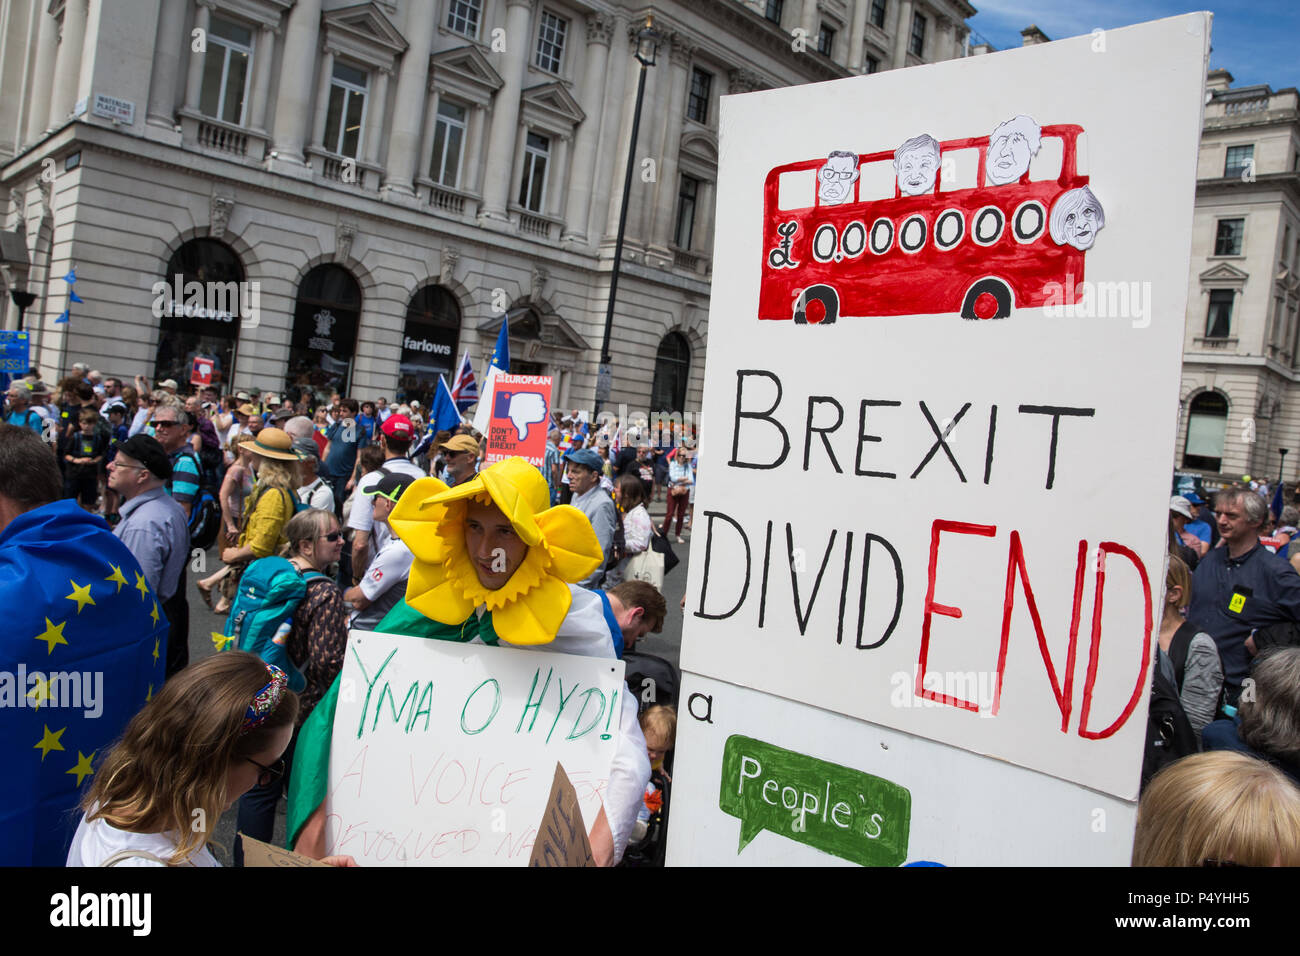 London, UK. 23rd June 2018. Tens of thousands of people representing a coalition of pro-EU groups march through central London on the second anniversary of the referendum to call for a 'People's Vote' on any Brexit deal proposed by the Government to manage its future relationship with the European Union. Credit: Mark Kerrison/Alamy Live News - Stock Image